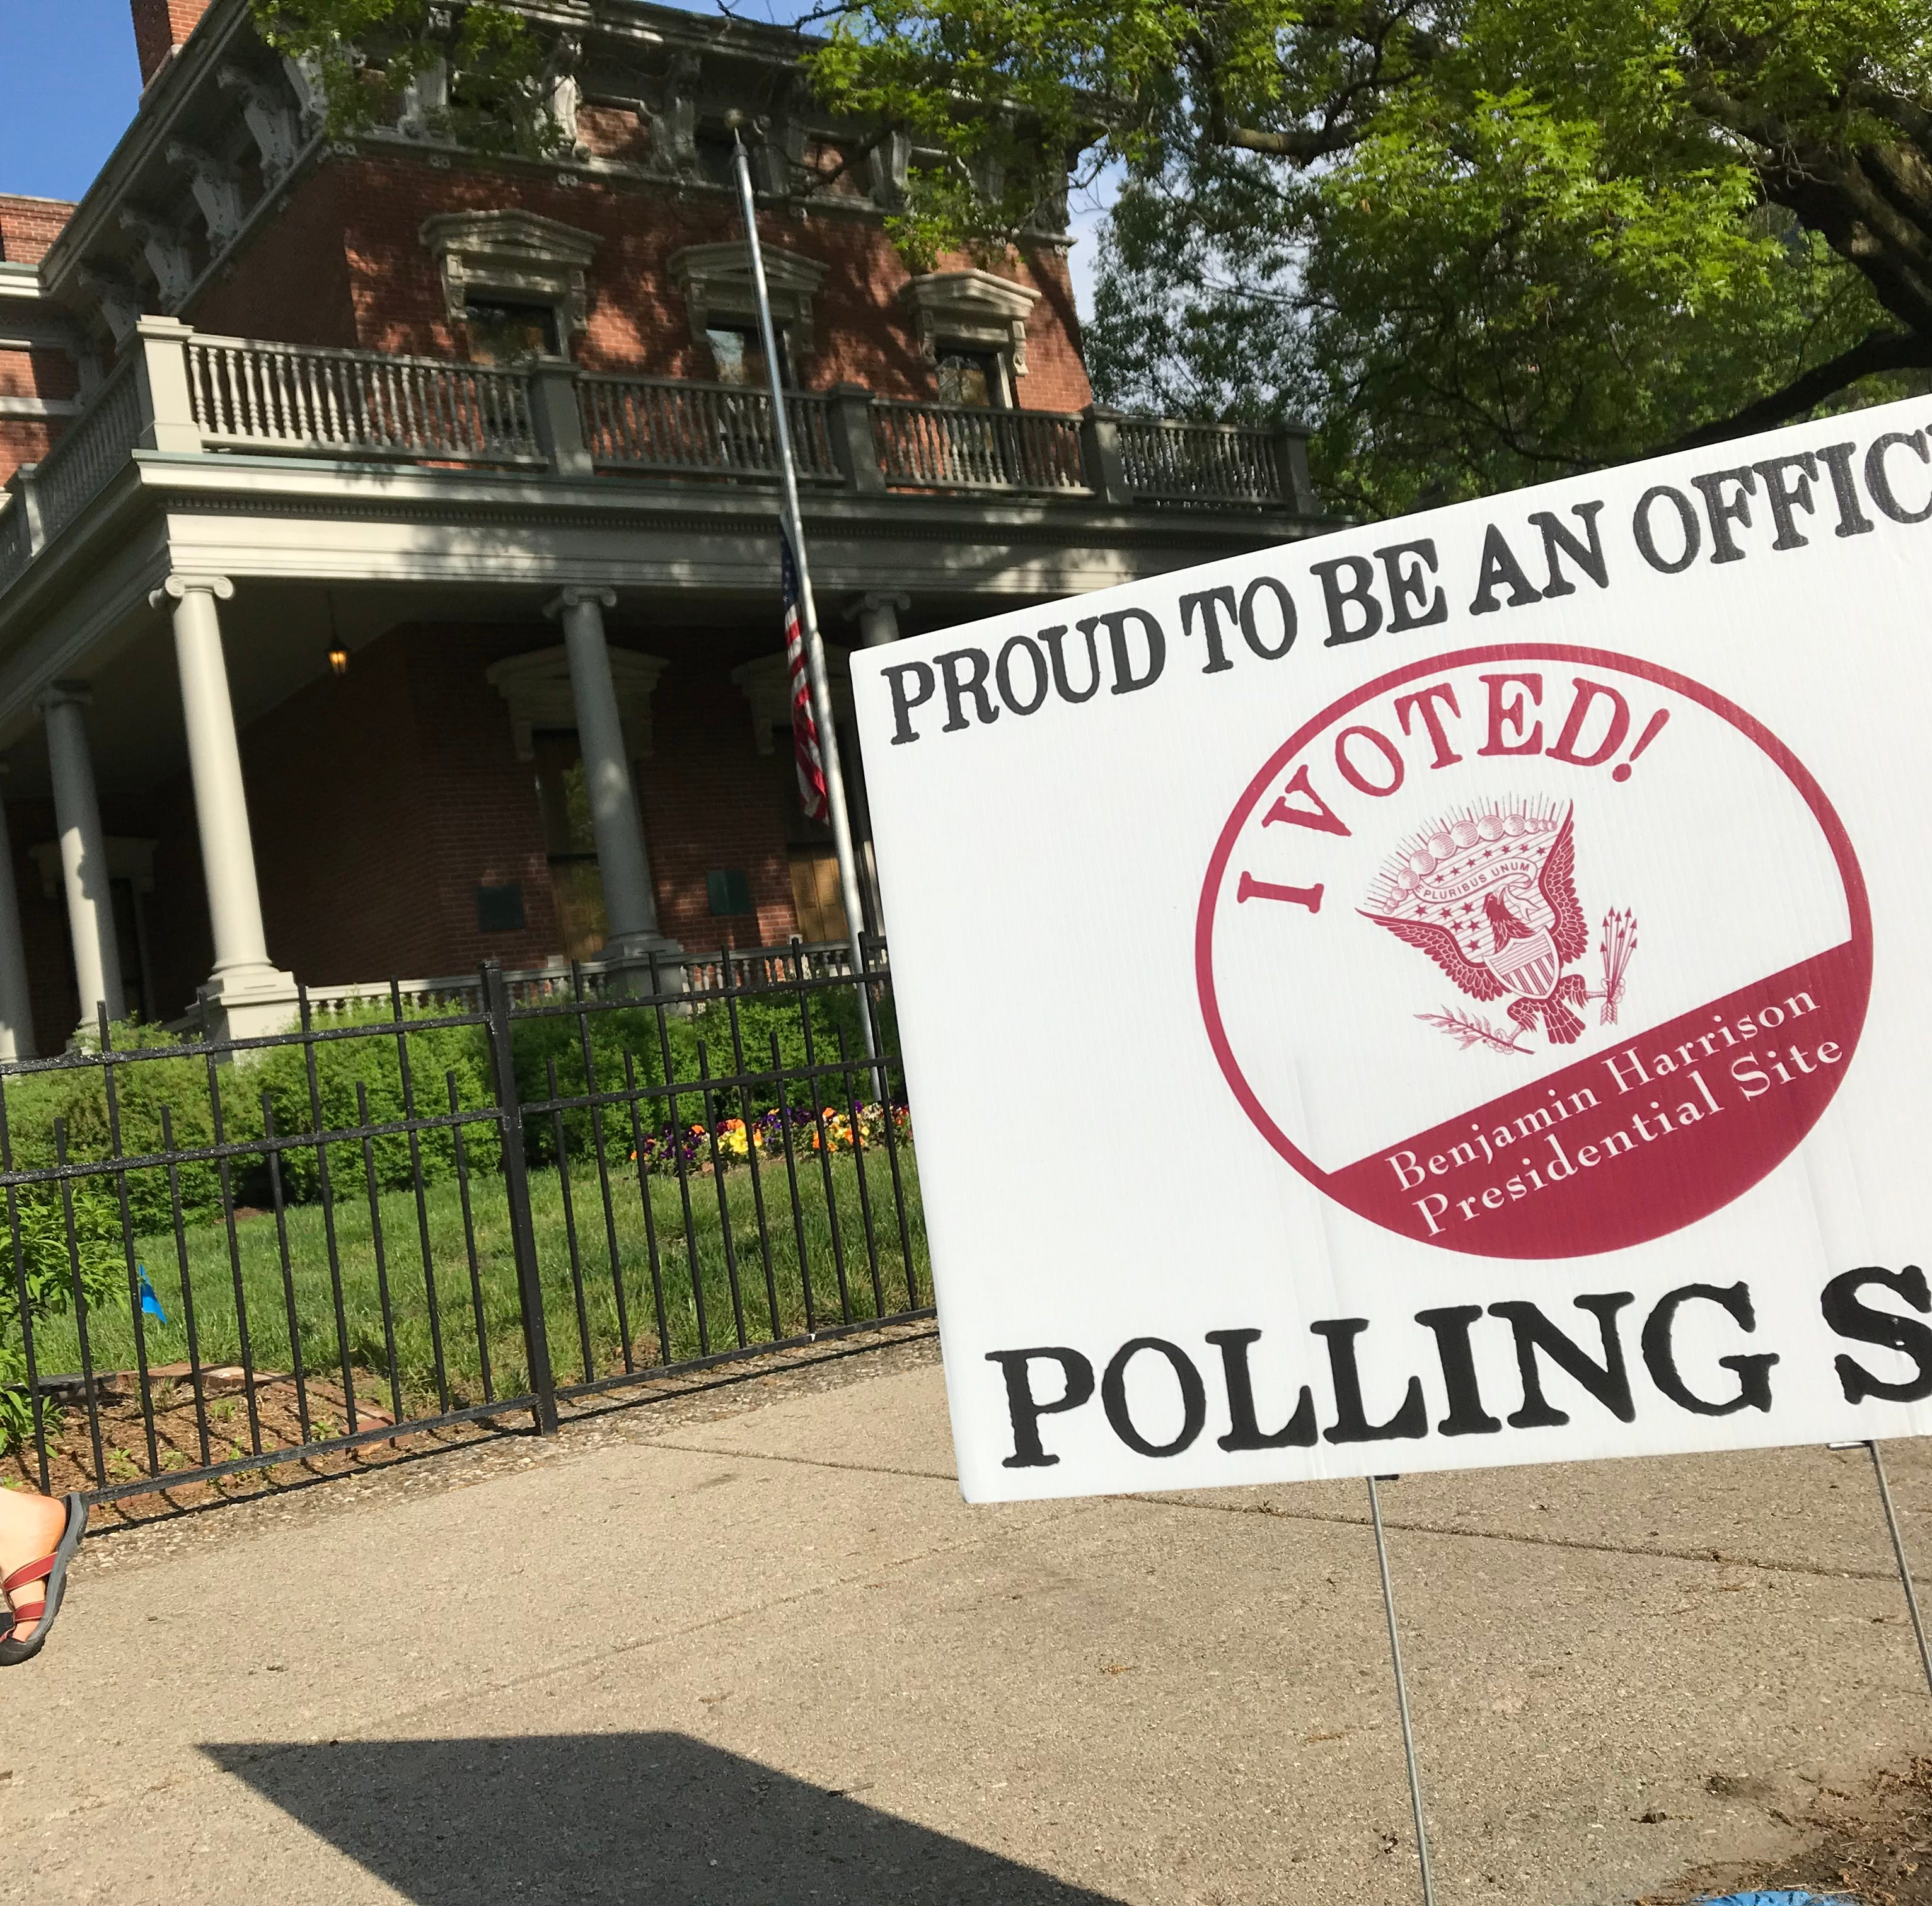 Voters head to the carriage house to cast their vote in the primary at the Benjamin Harrison Presidential Site, Tuesday, May 7, 2018.